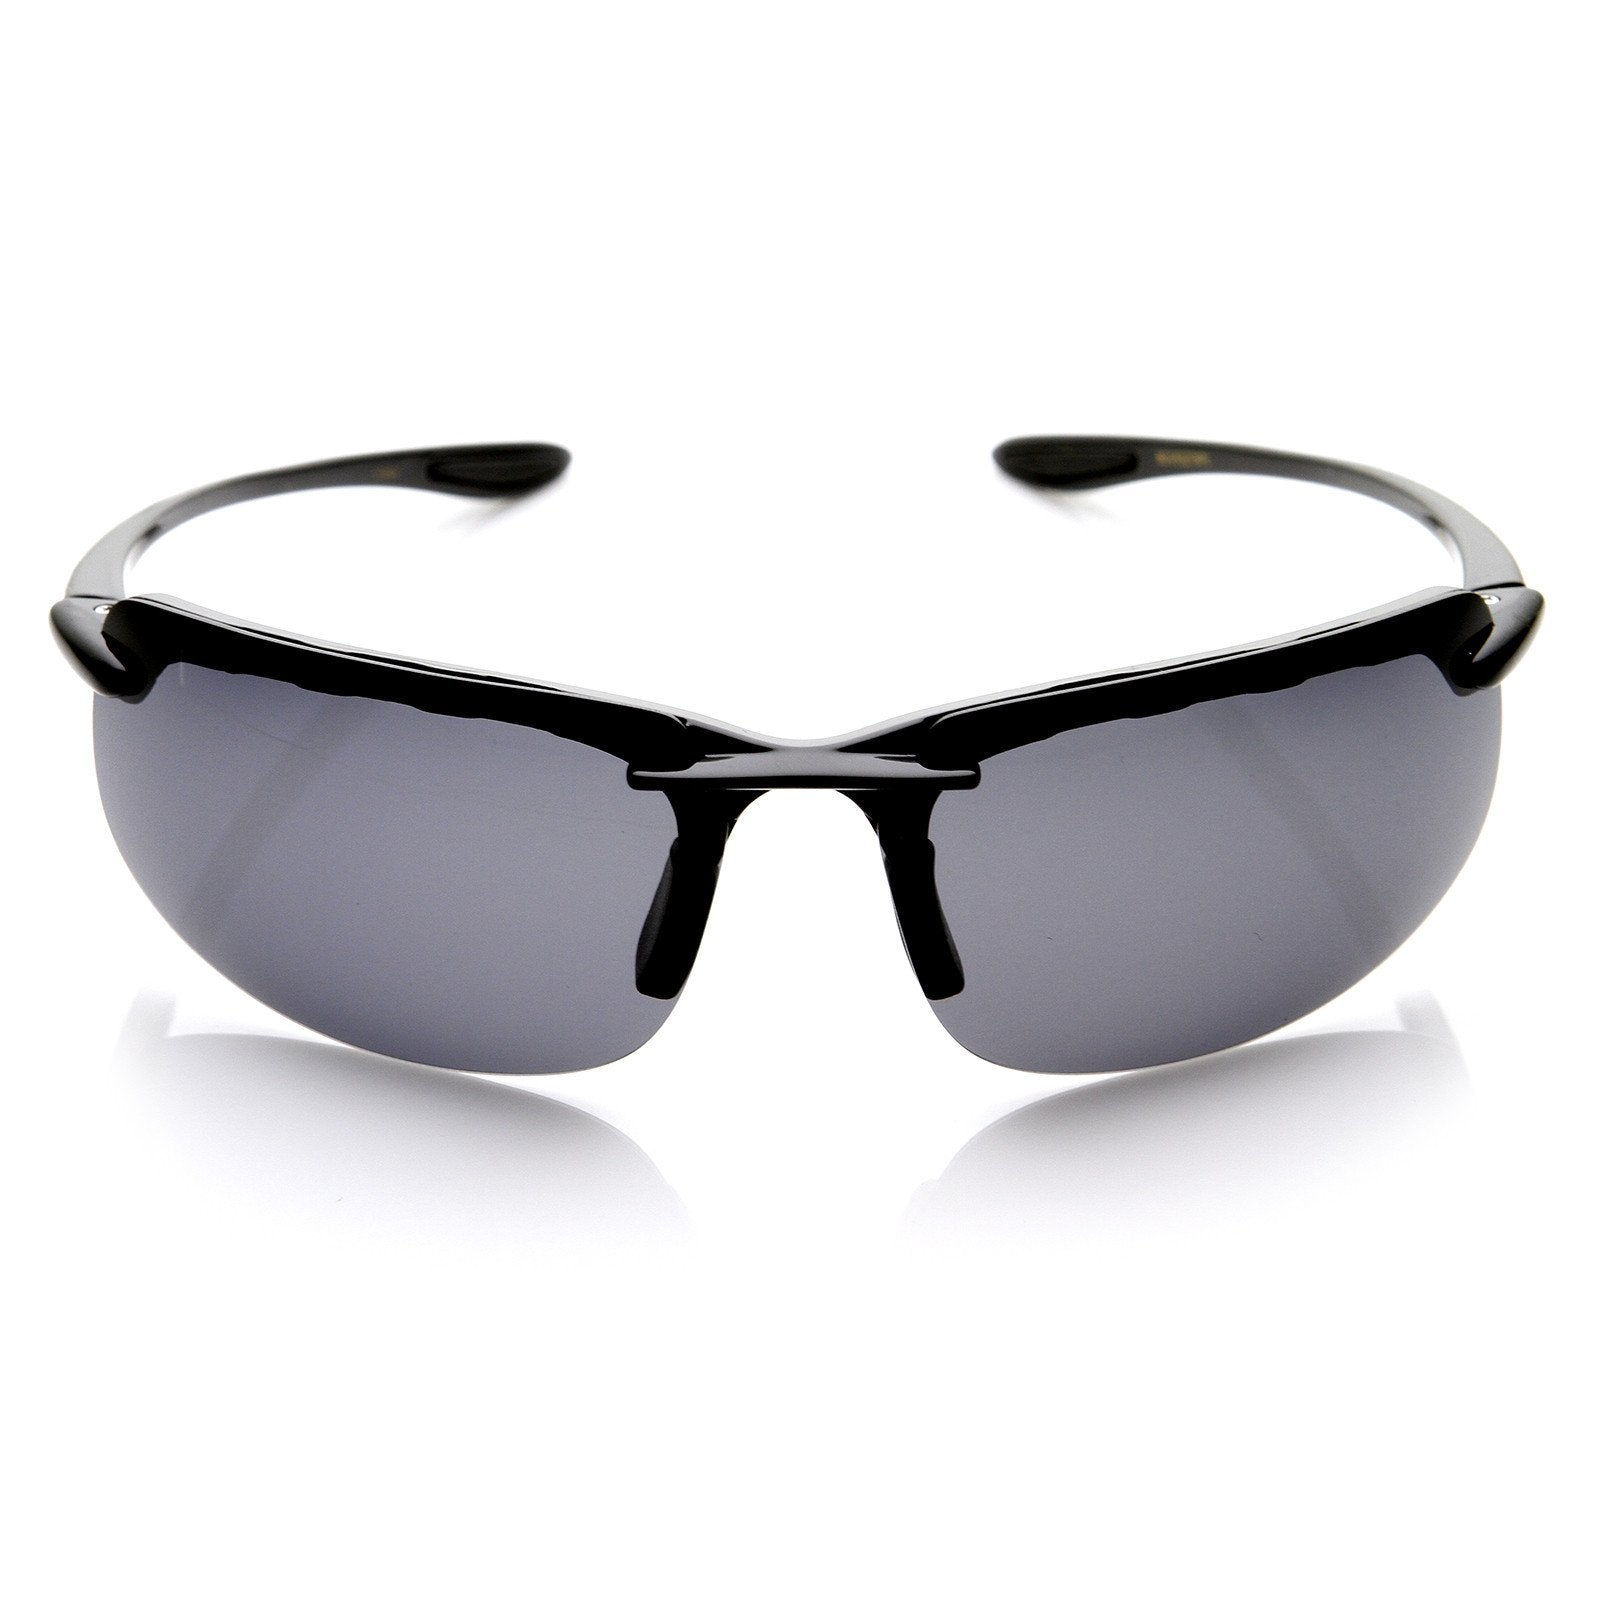 be15e2406b6 Mens Lightweight Sports Polarized Lens Semi Rimless Sunglasses 8746